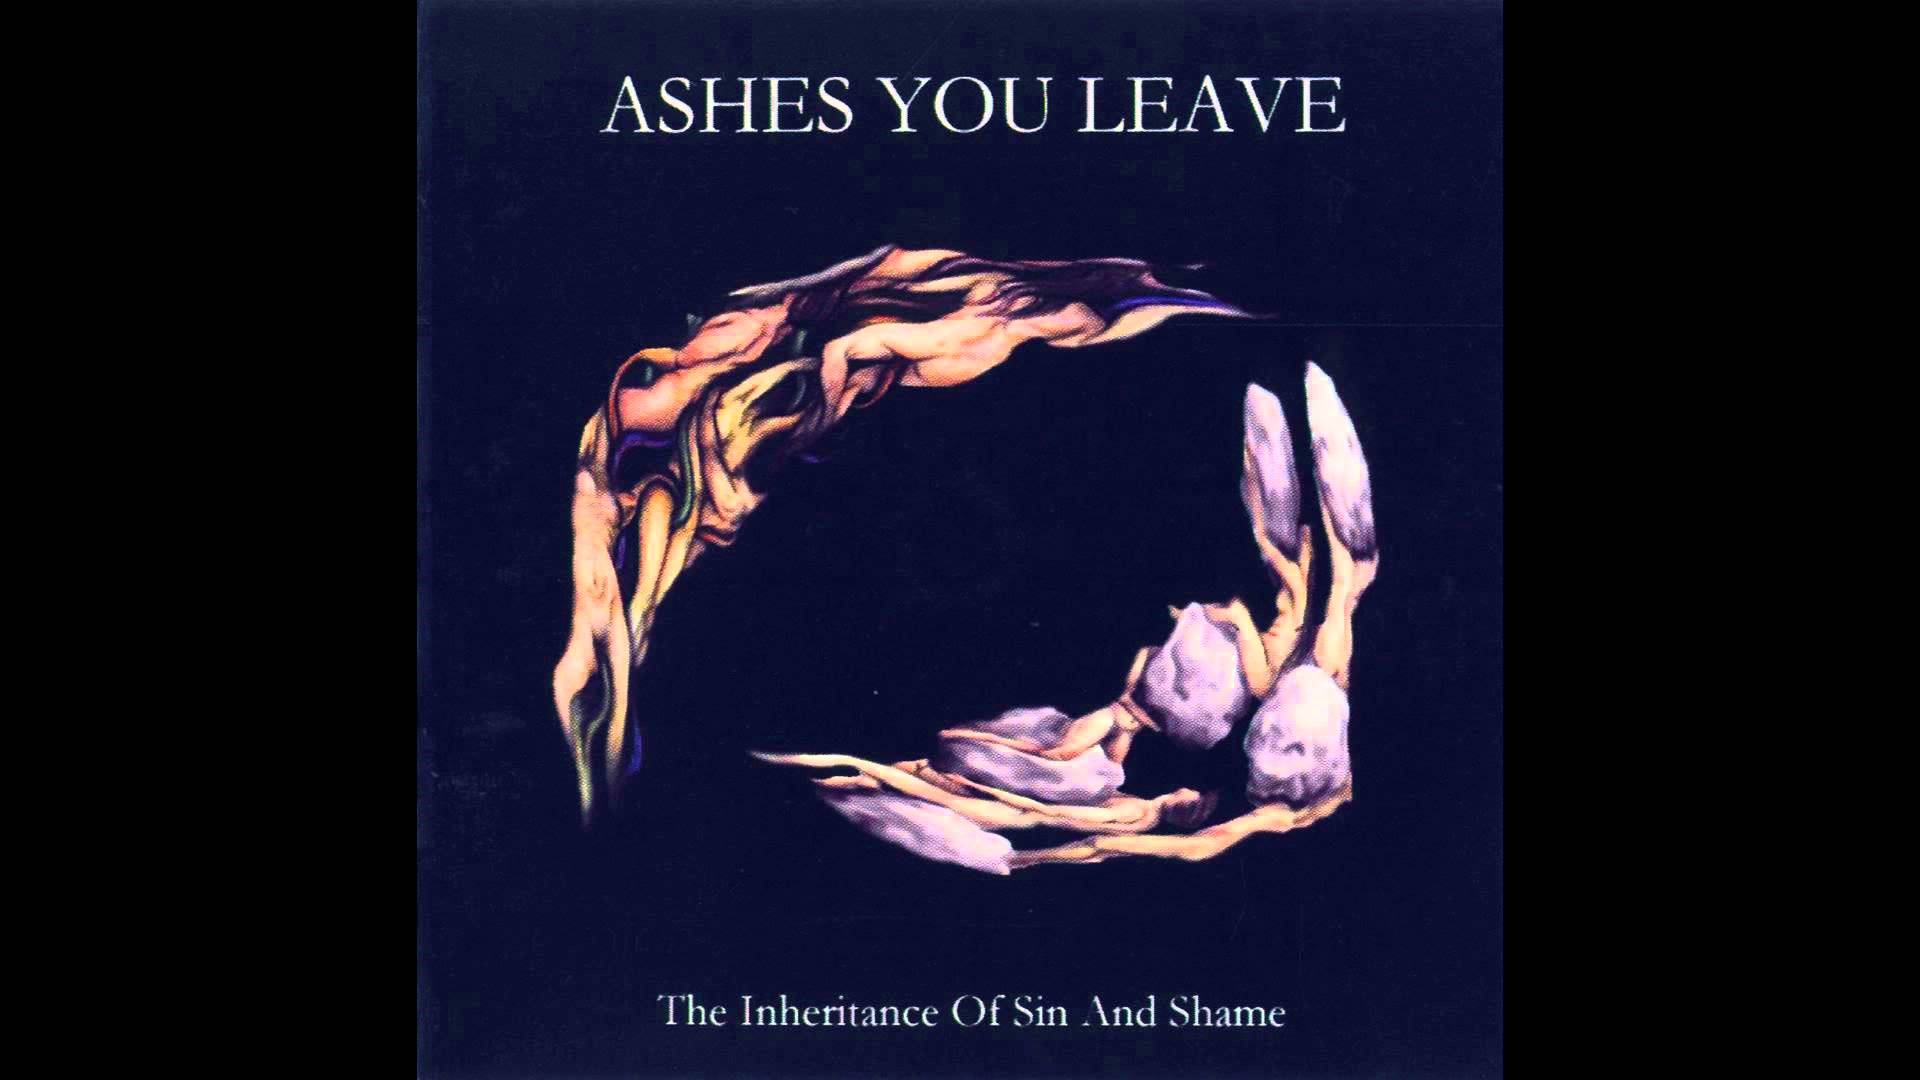 Ashes You Leave - The Inheritance of Sin and Shame (Full album HQ)